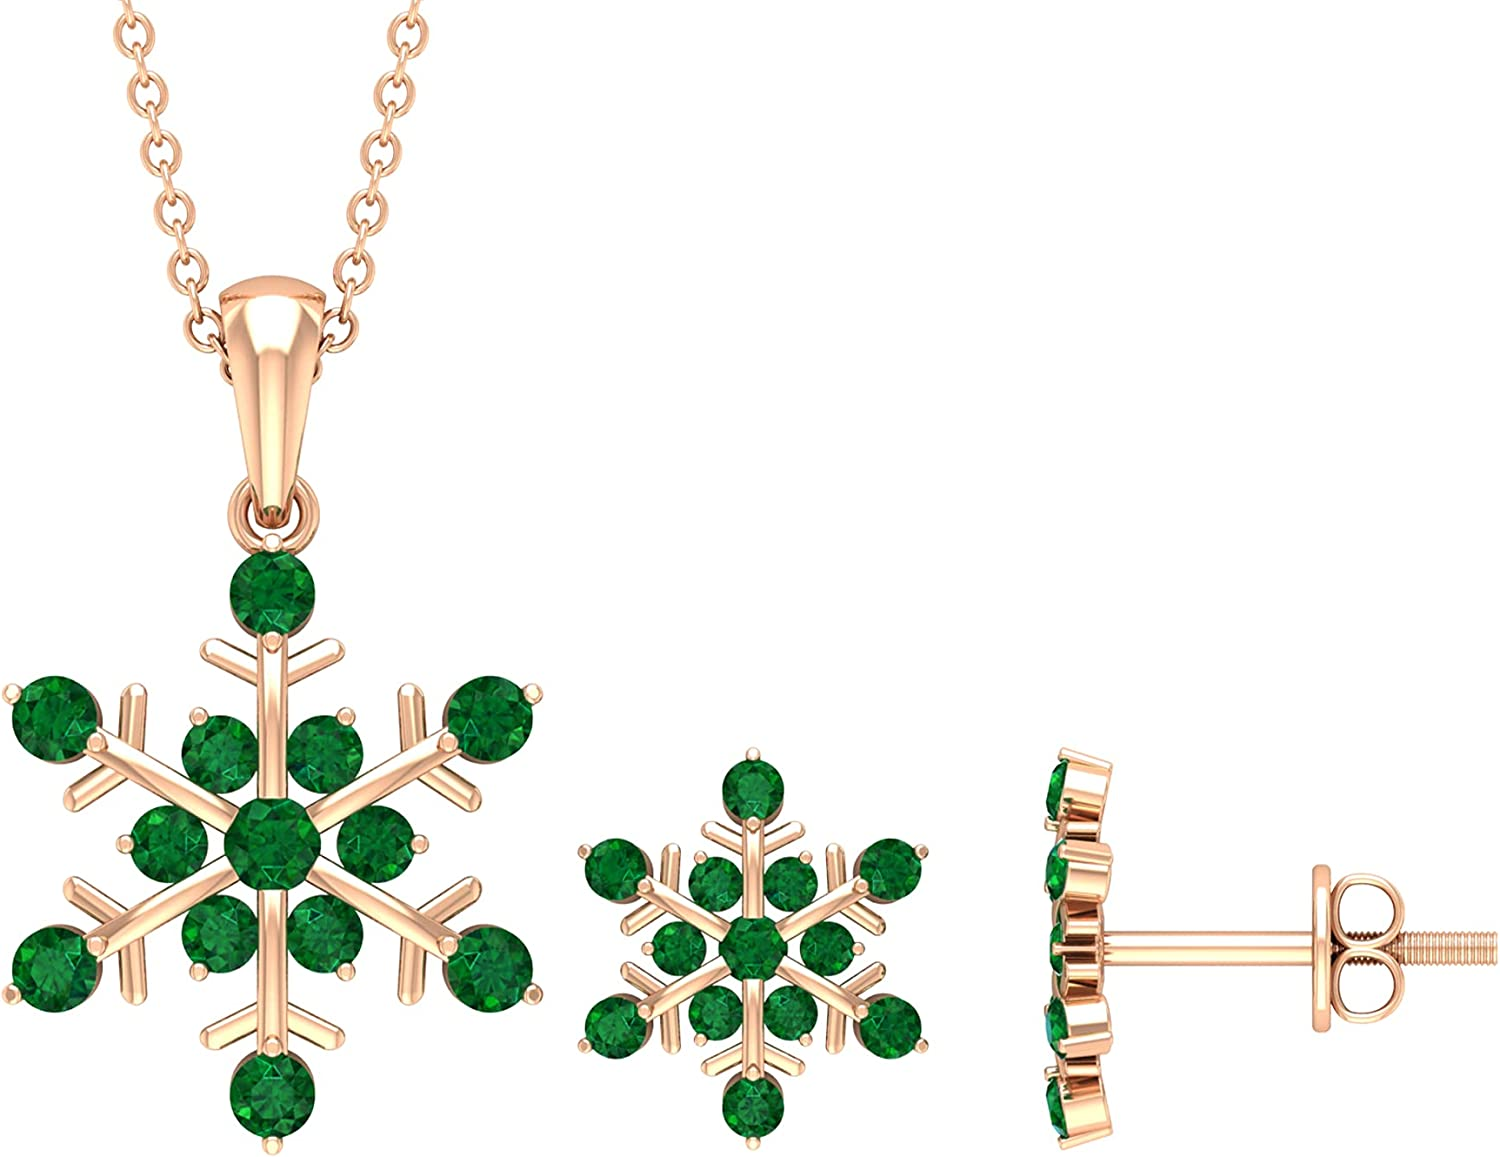 Snowflake Earrings and Necklace Set, Gold Jewelry Sets For Women 14K Rose Gold